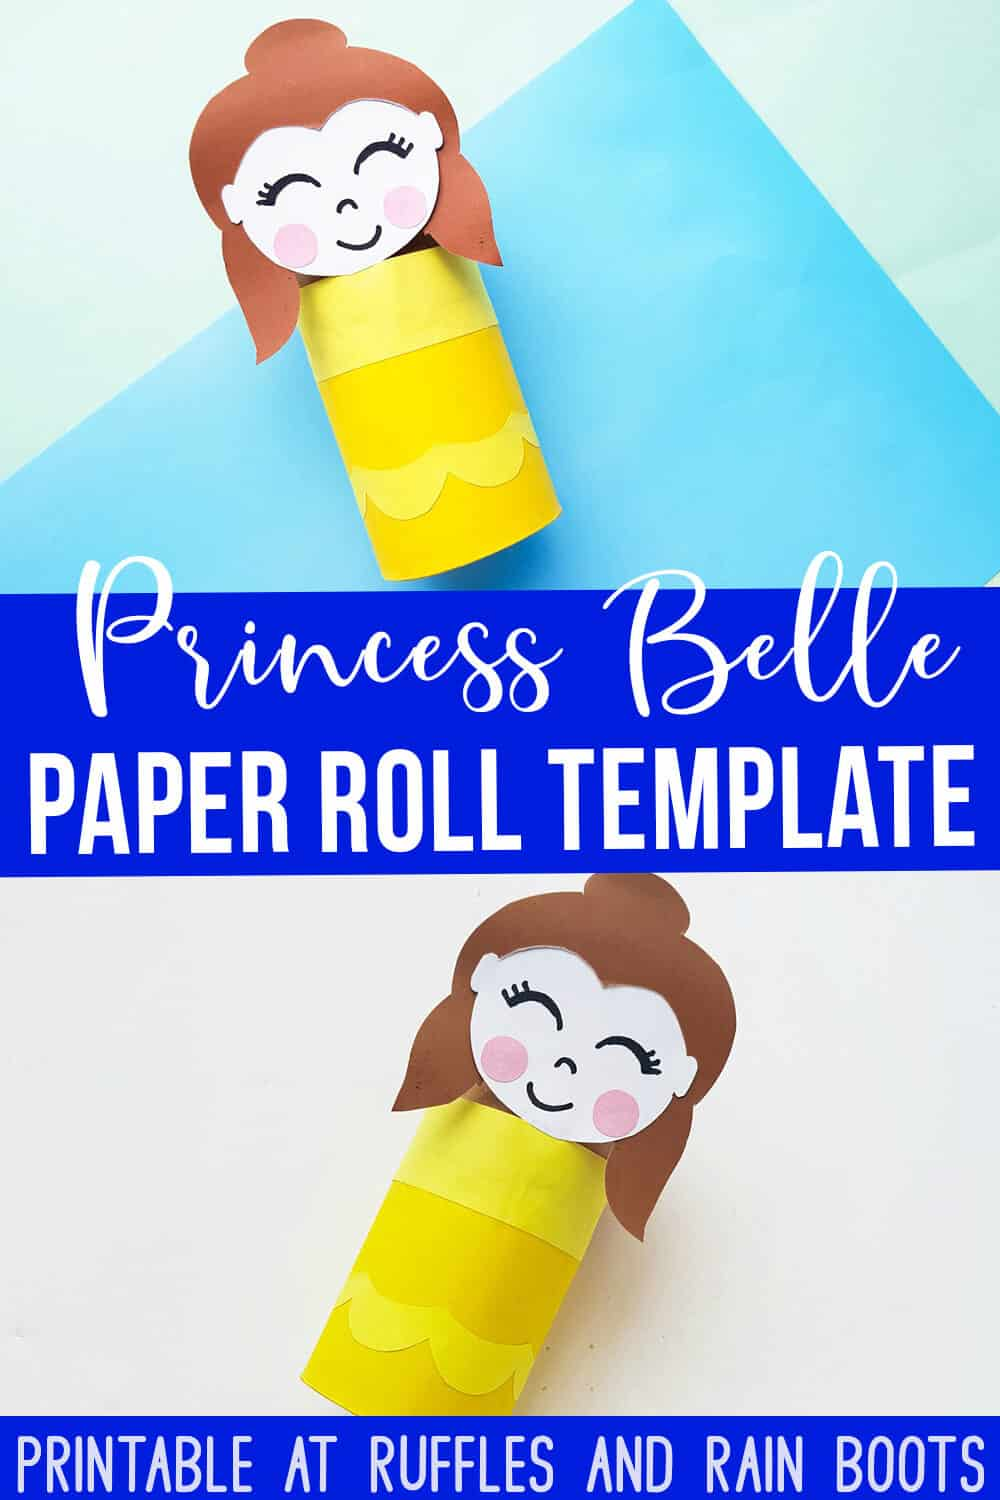 Princess Belle toilet paper roll craft on blue background with text which reads Princess Belle paper roll template